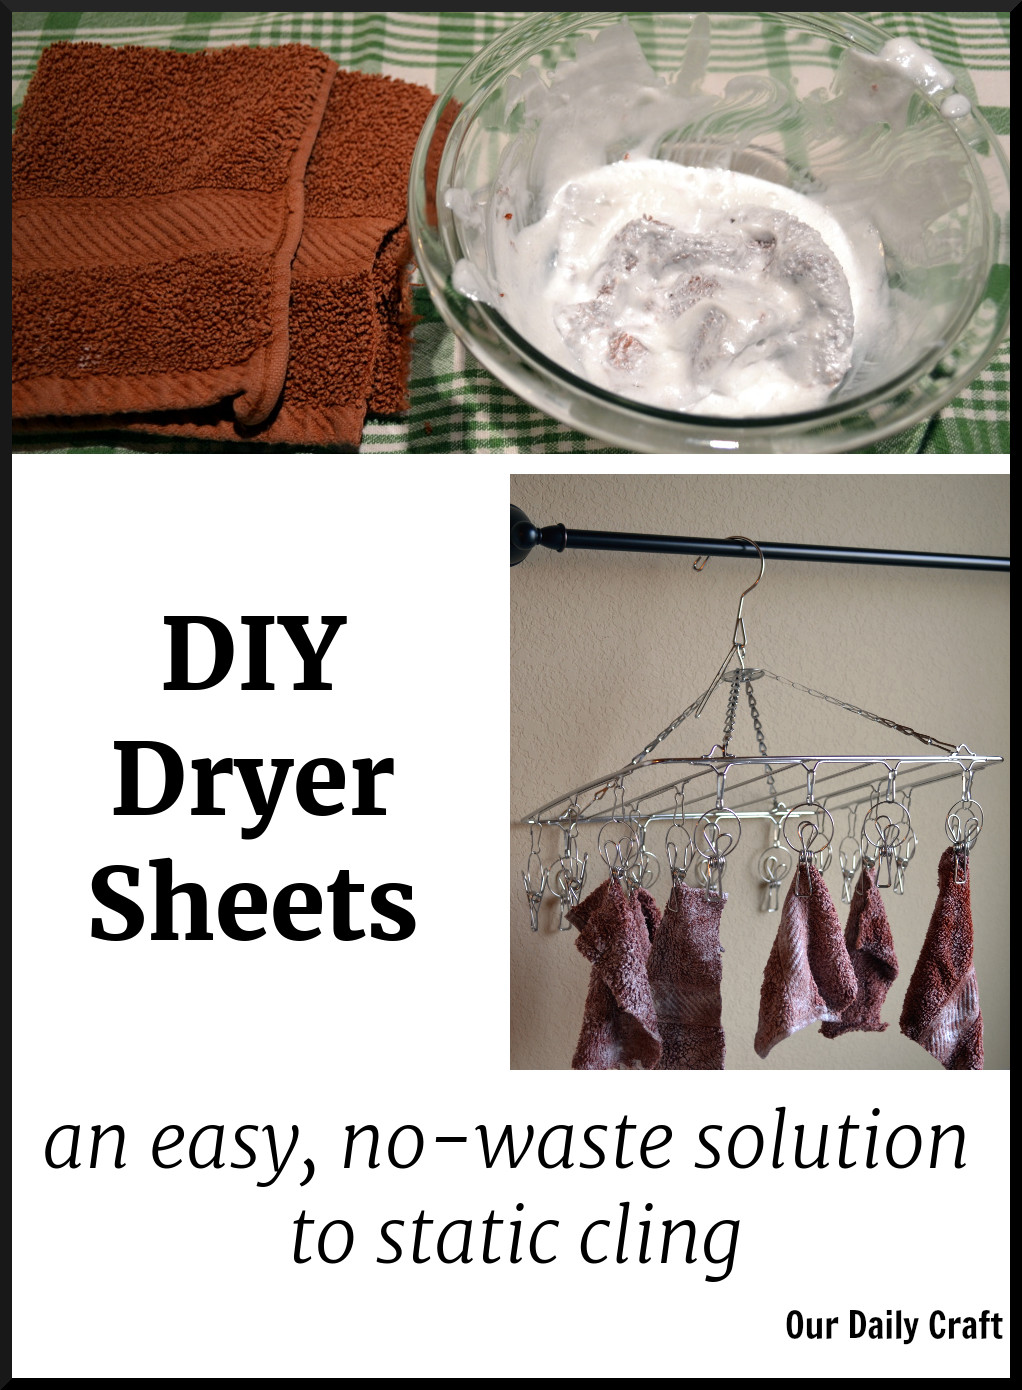 Reusable Dryer Sheets Are a Simple, No Waste Solution